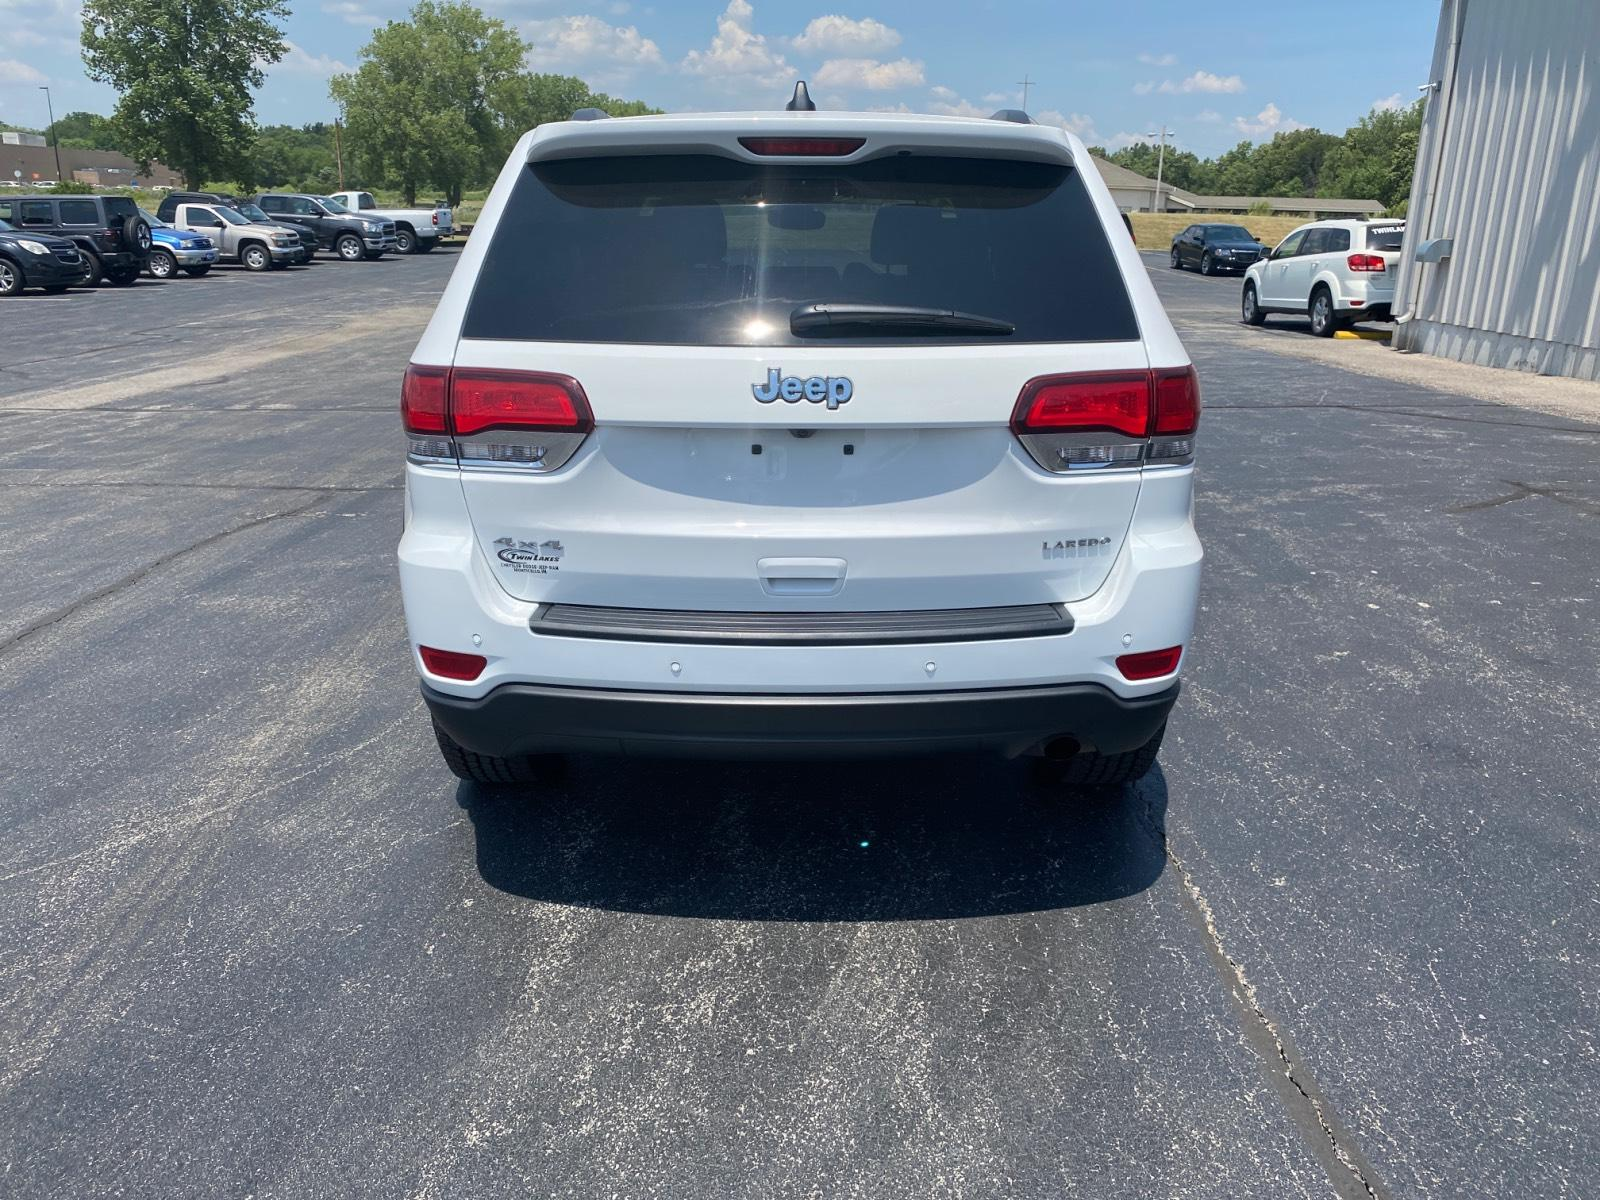 Certified Pre-Owned 2020 Jeep Grand Cherokee Laredo E 4x4